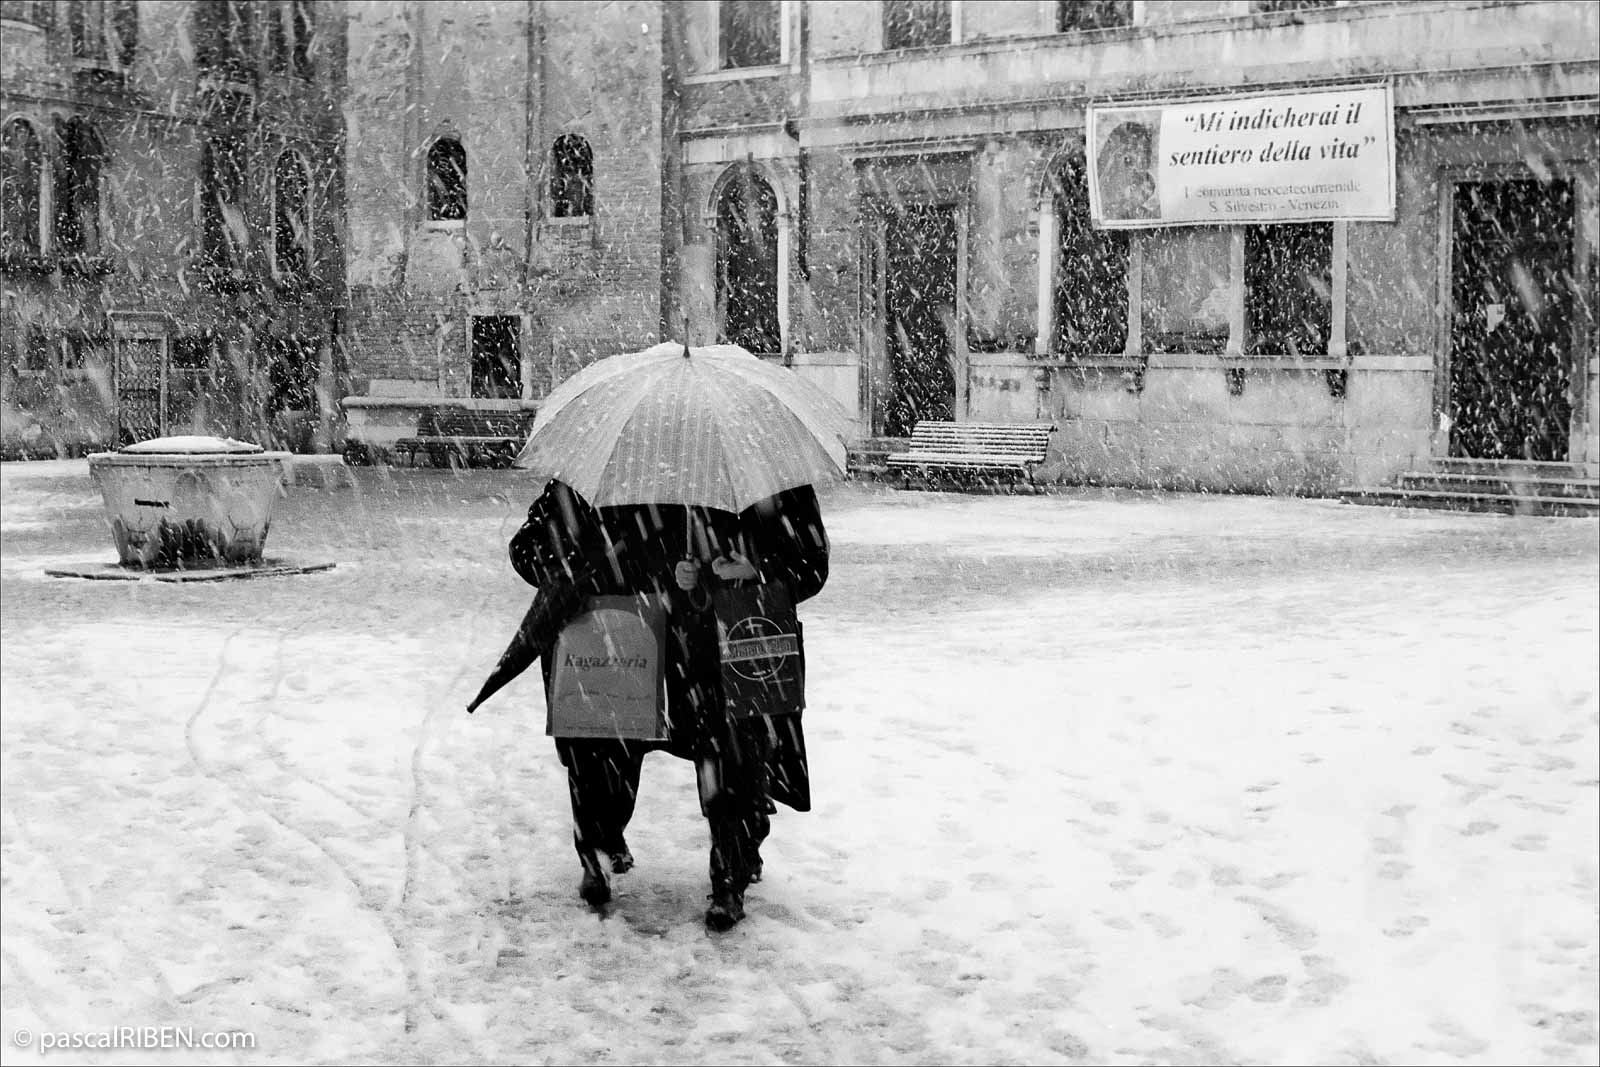 Snow and umbrella on Campo San Silvestro, Venice, Italy, 2001